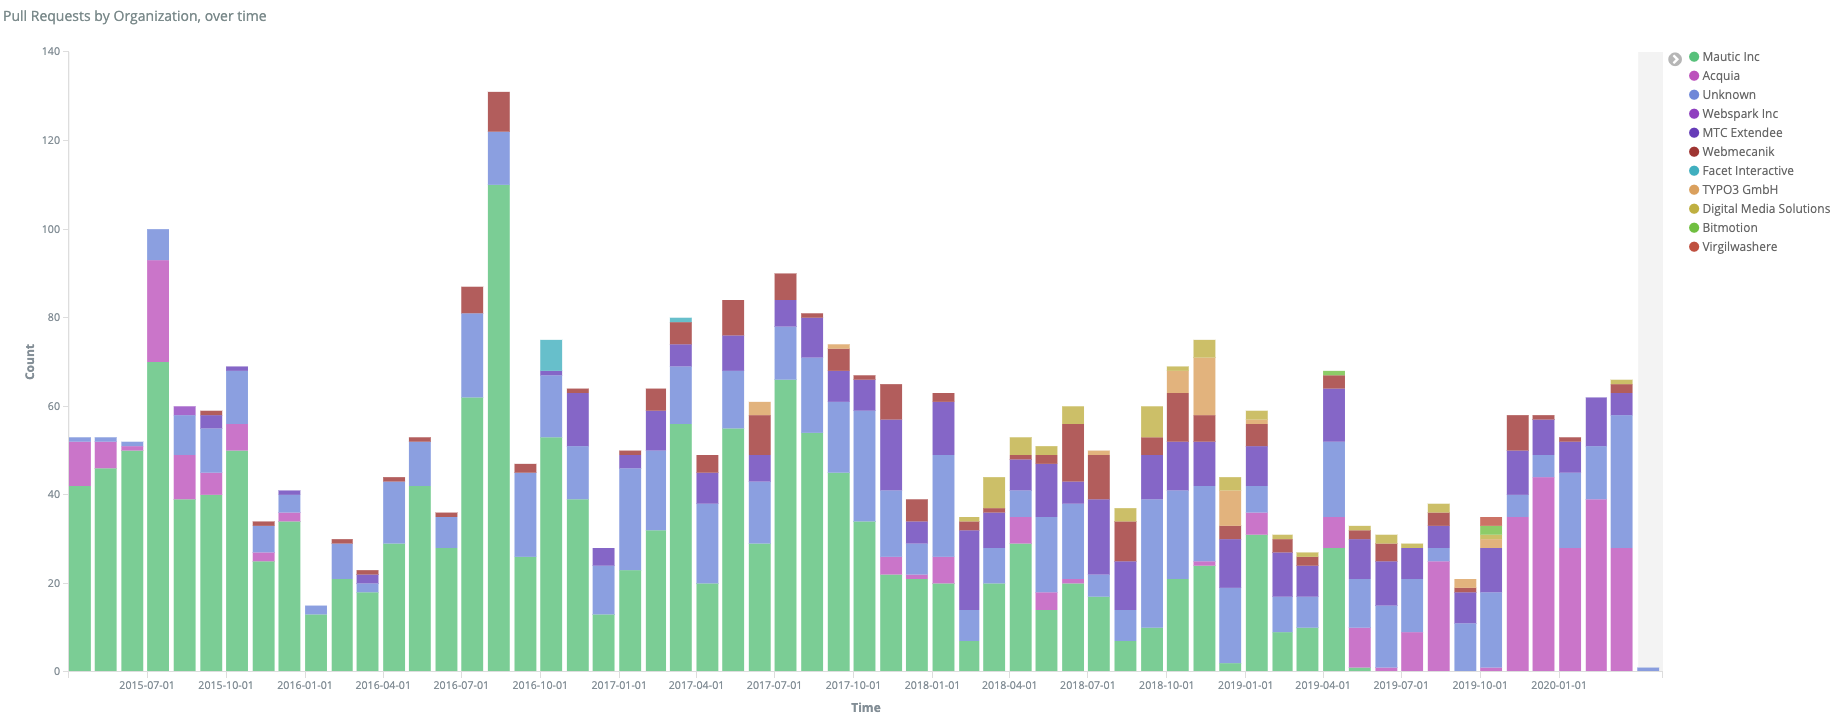 Chart showing pull requests by organisation